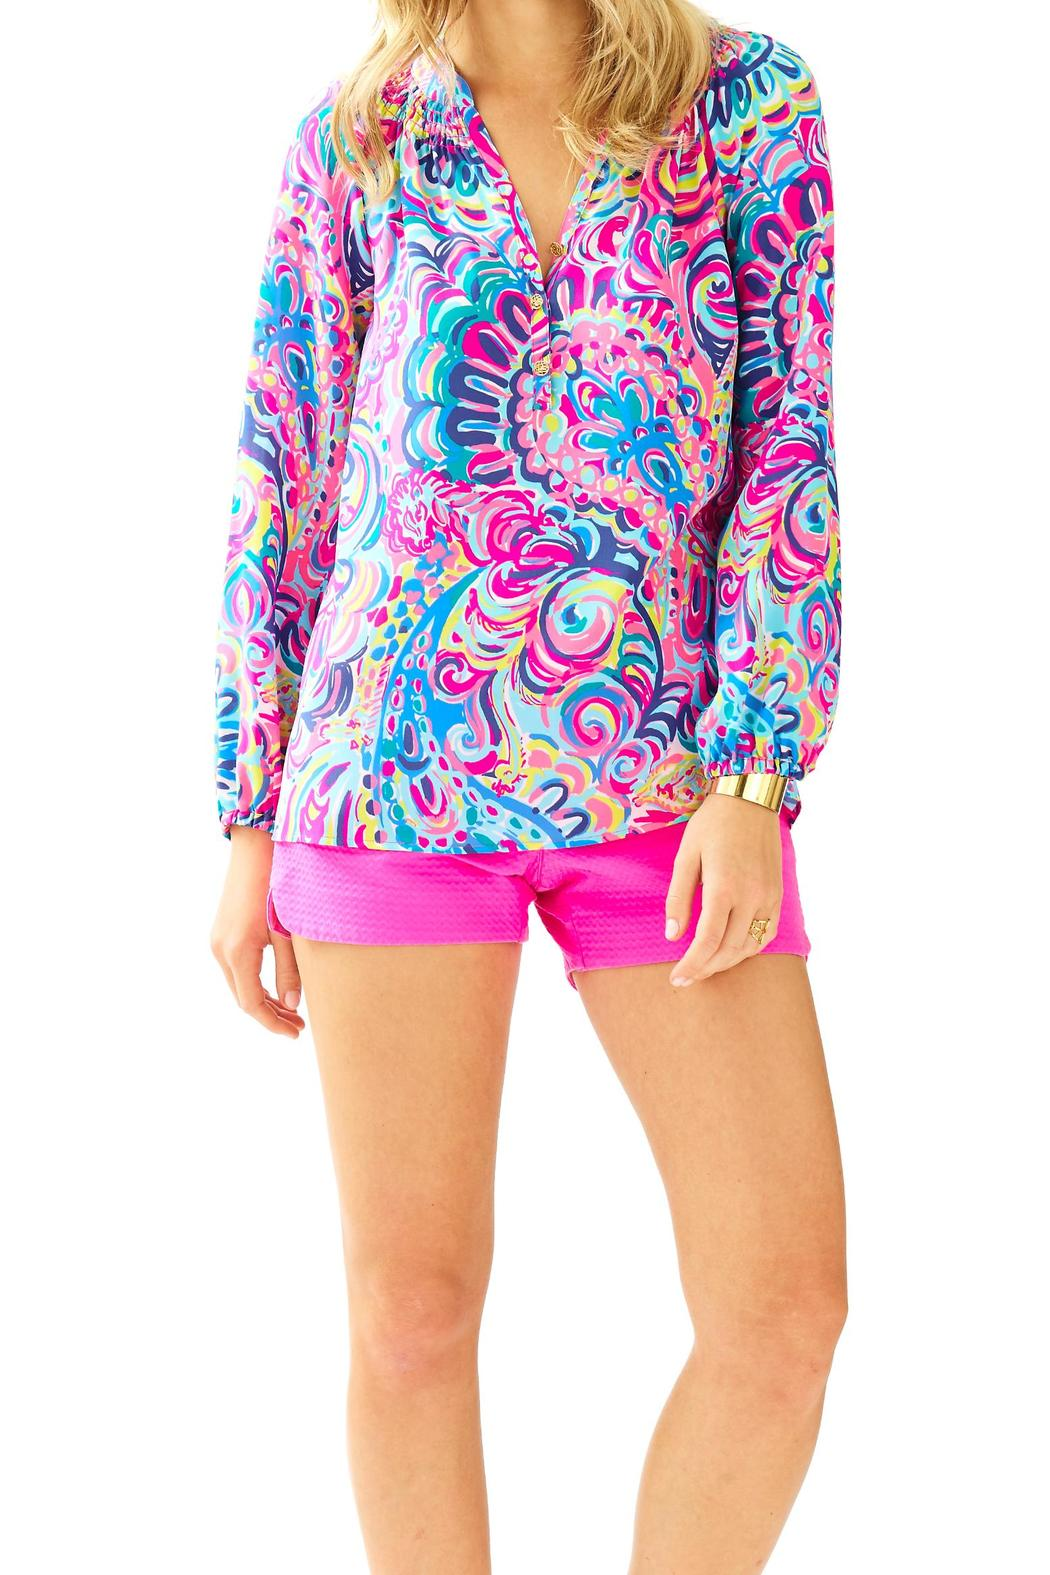 Lilly Pulitzer Elsa Top PsychedelicSunshine from